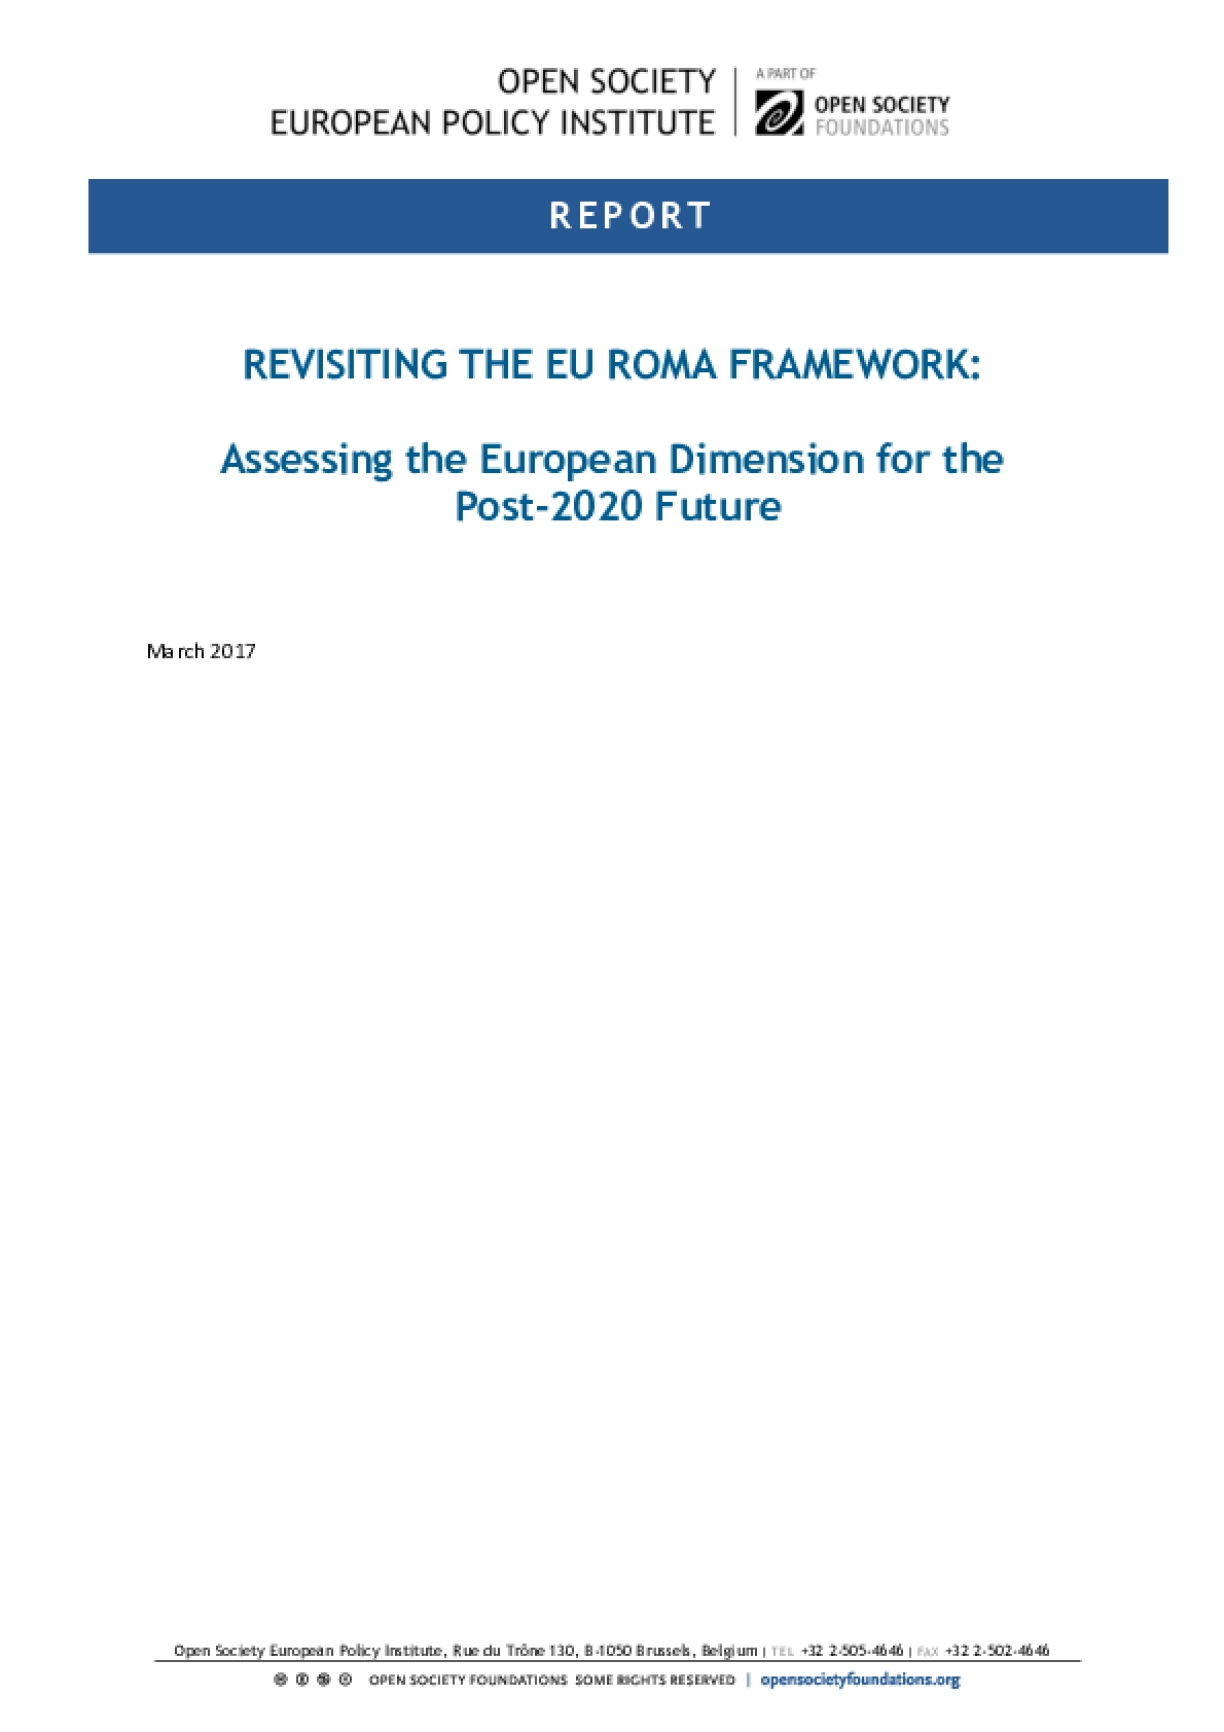 Revisiting the EU Roma Framework: Assessing the European Dimension for the Post-2020 Future